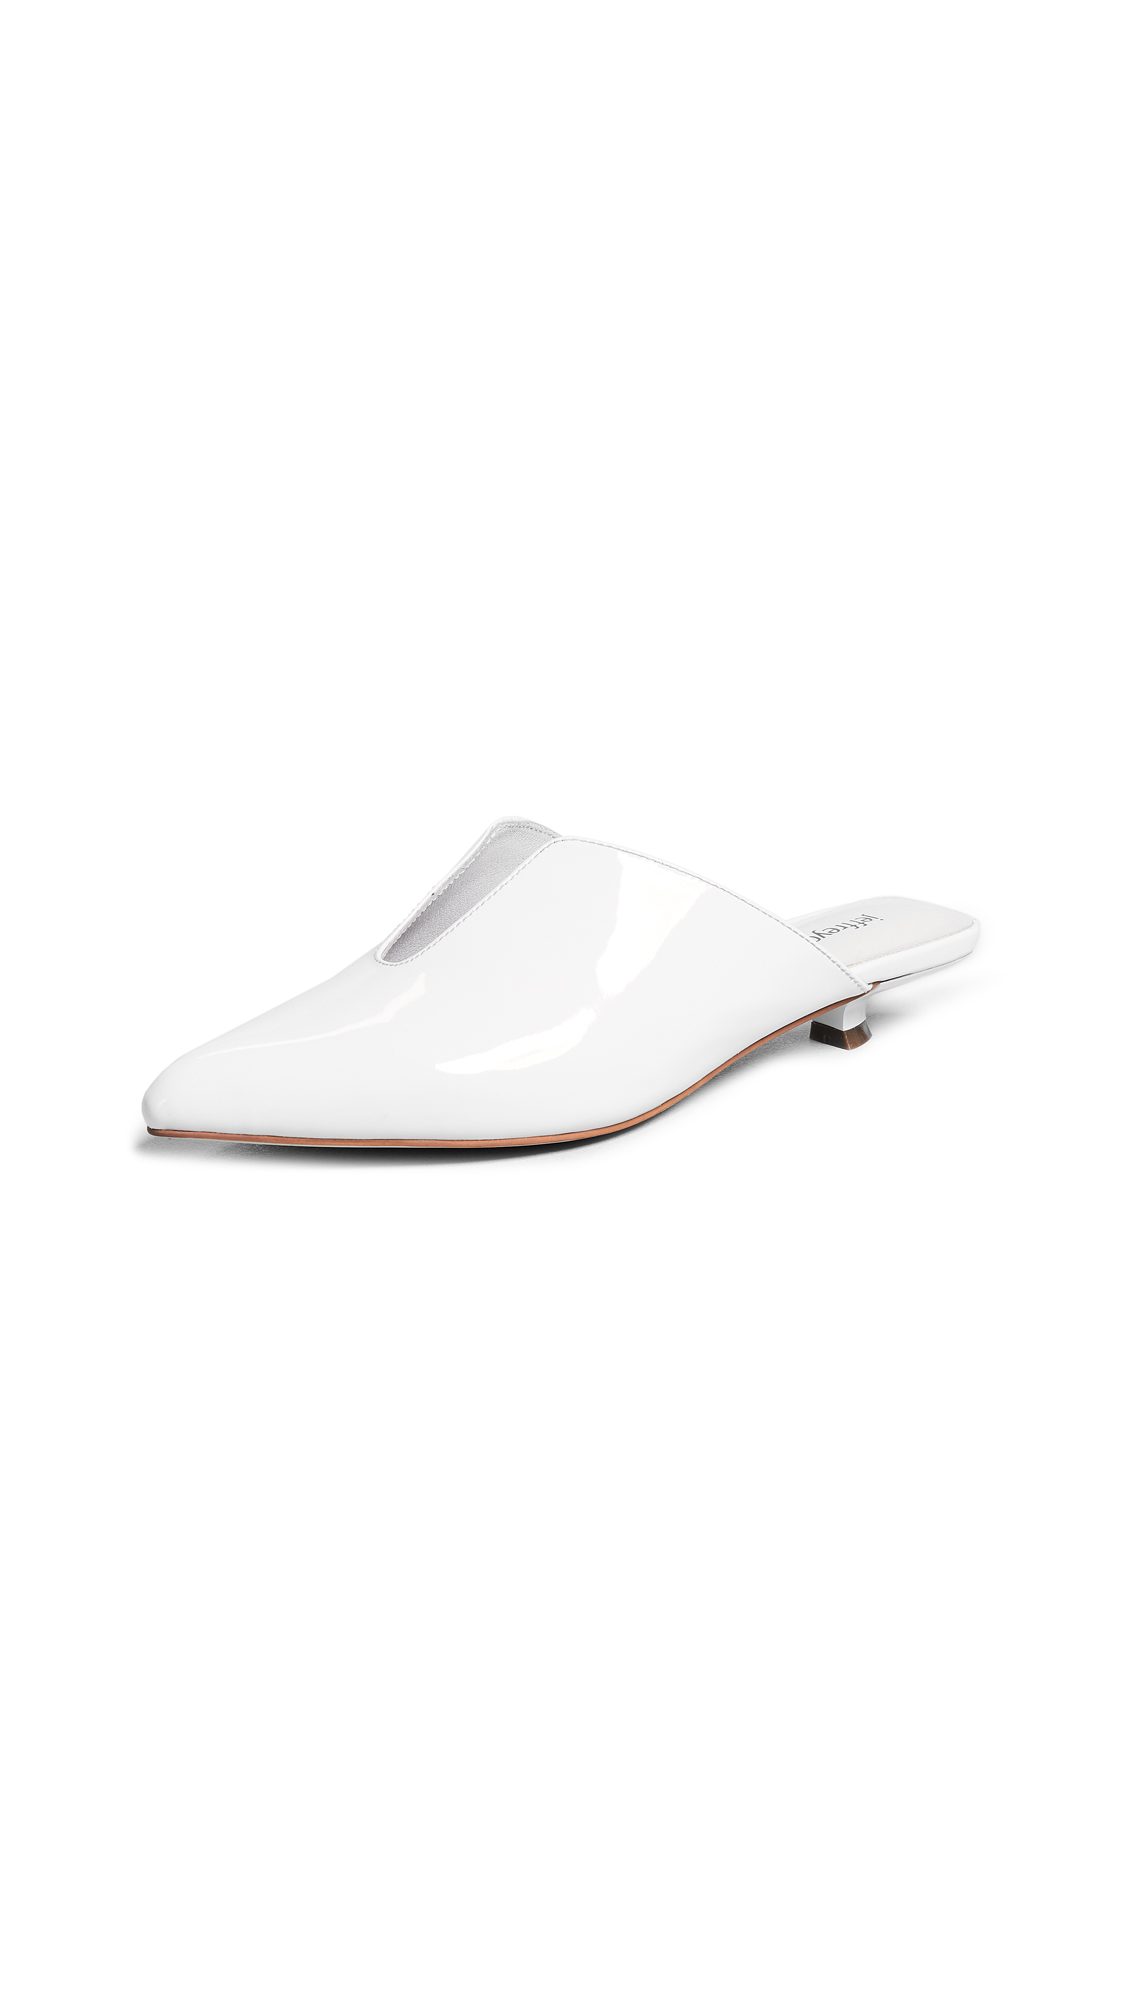 Jeffrey Campbell Tableu Kitten Heel Pumps - White